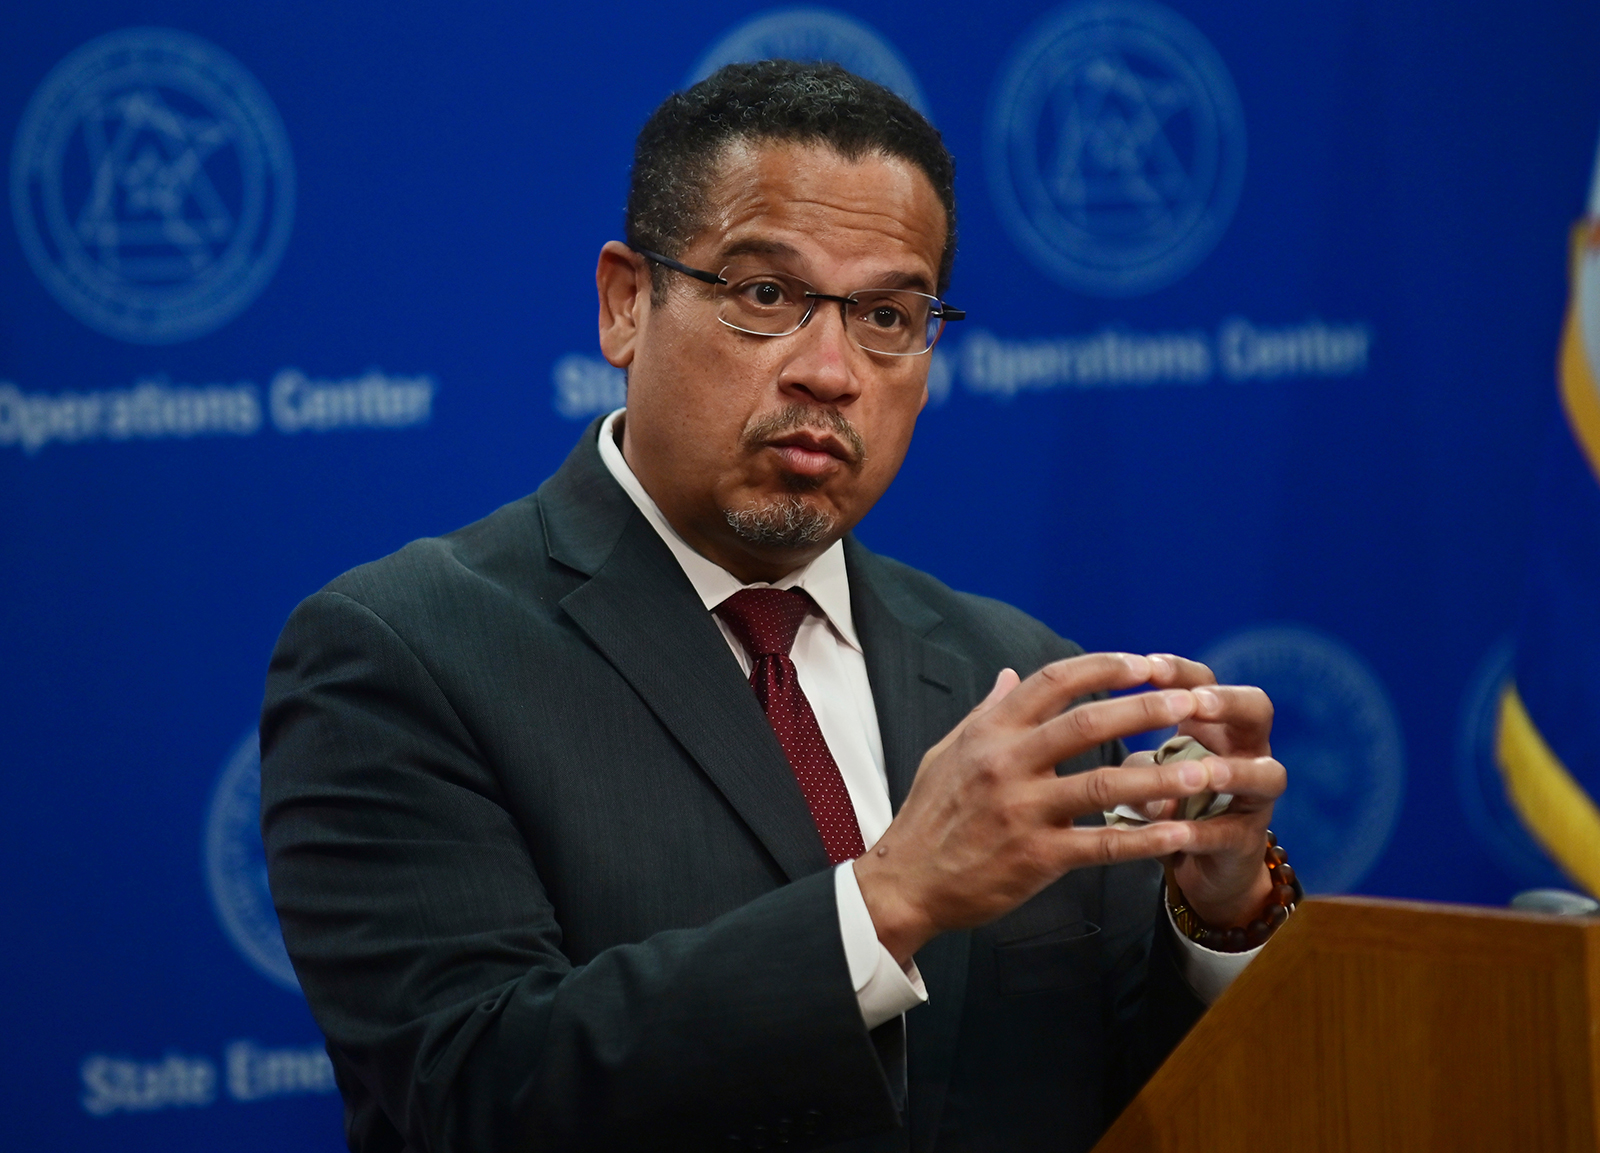 Minnesota Attorney General Keith Ellison answers questions about the investigation into the death of George Floyd in St. Paul, Minnesota, on May 27.